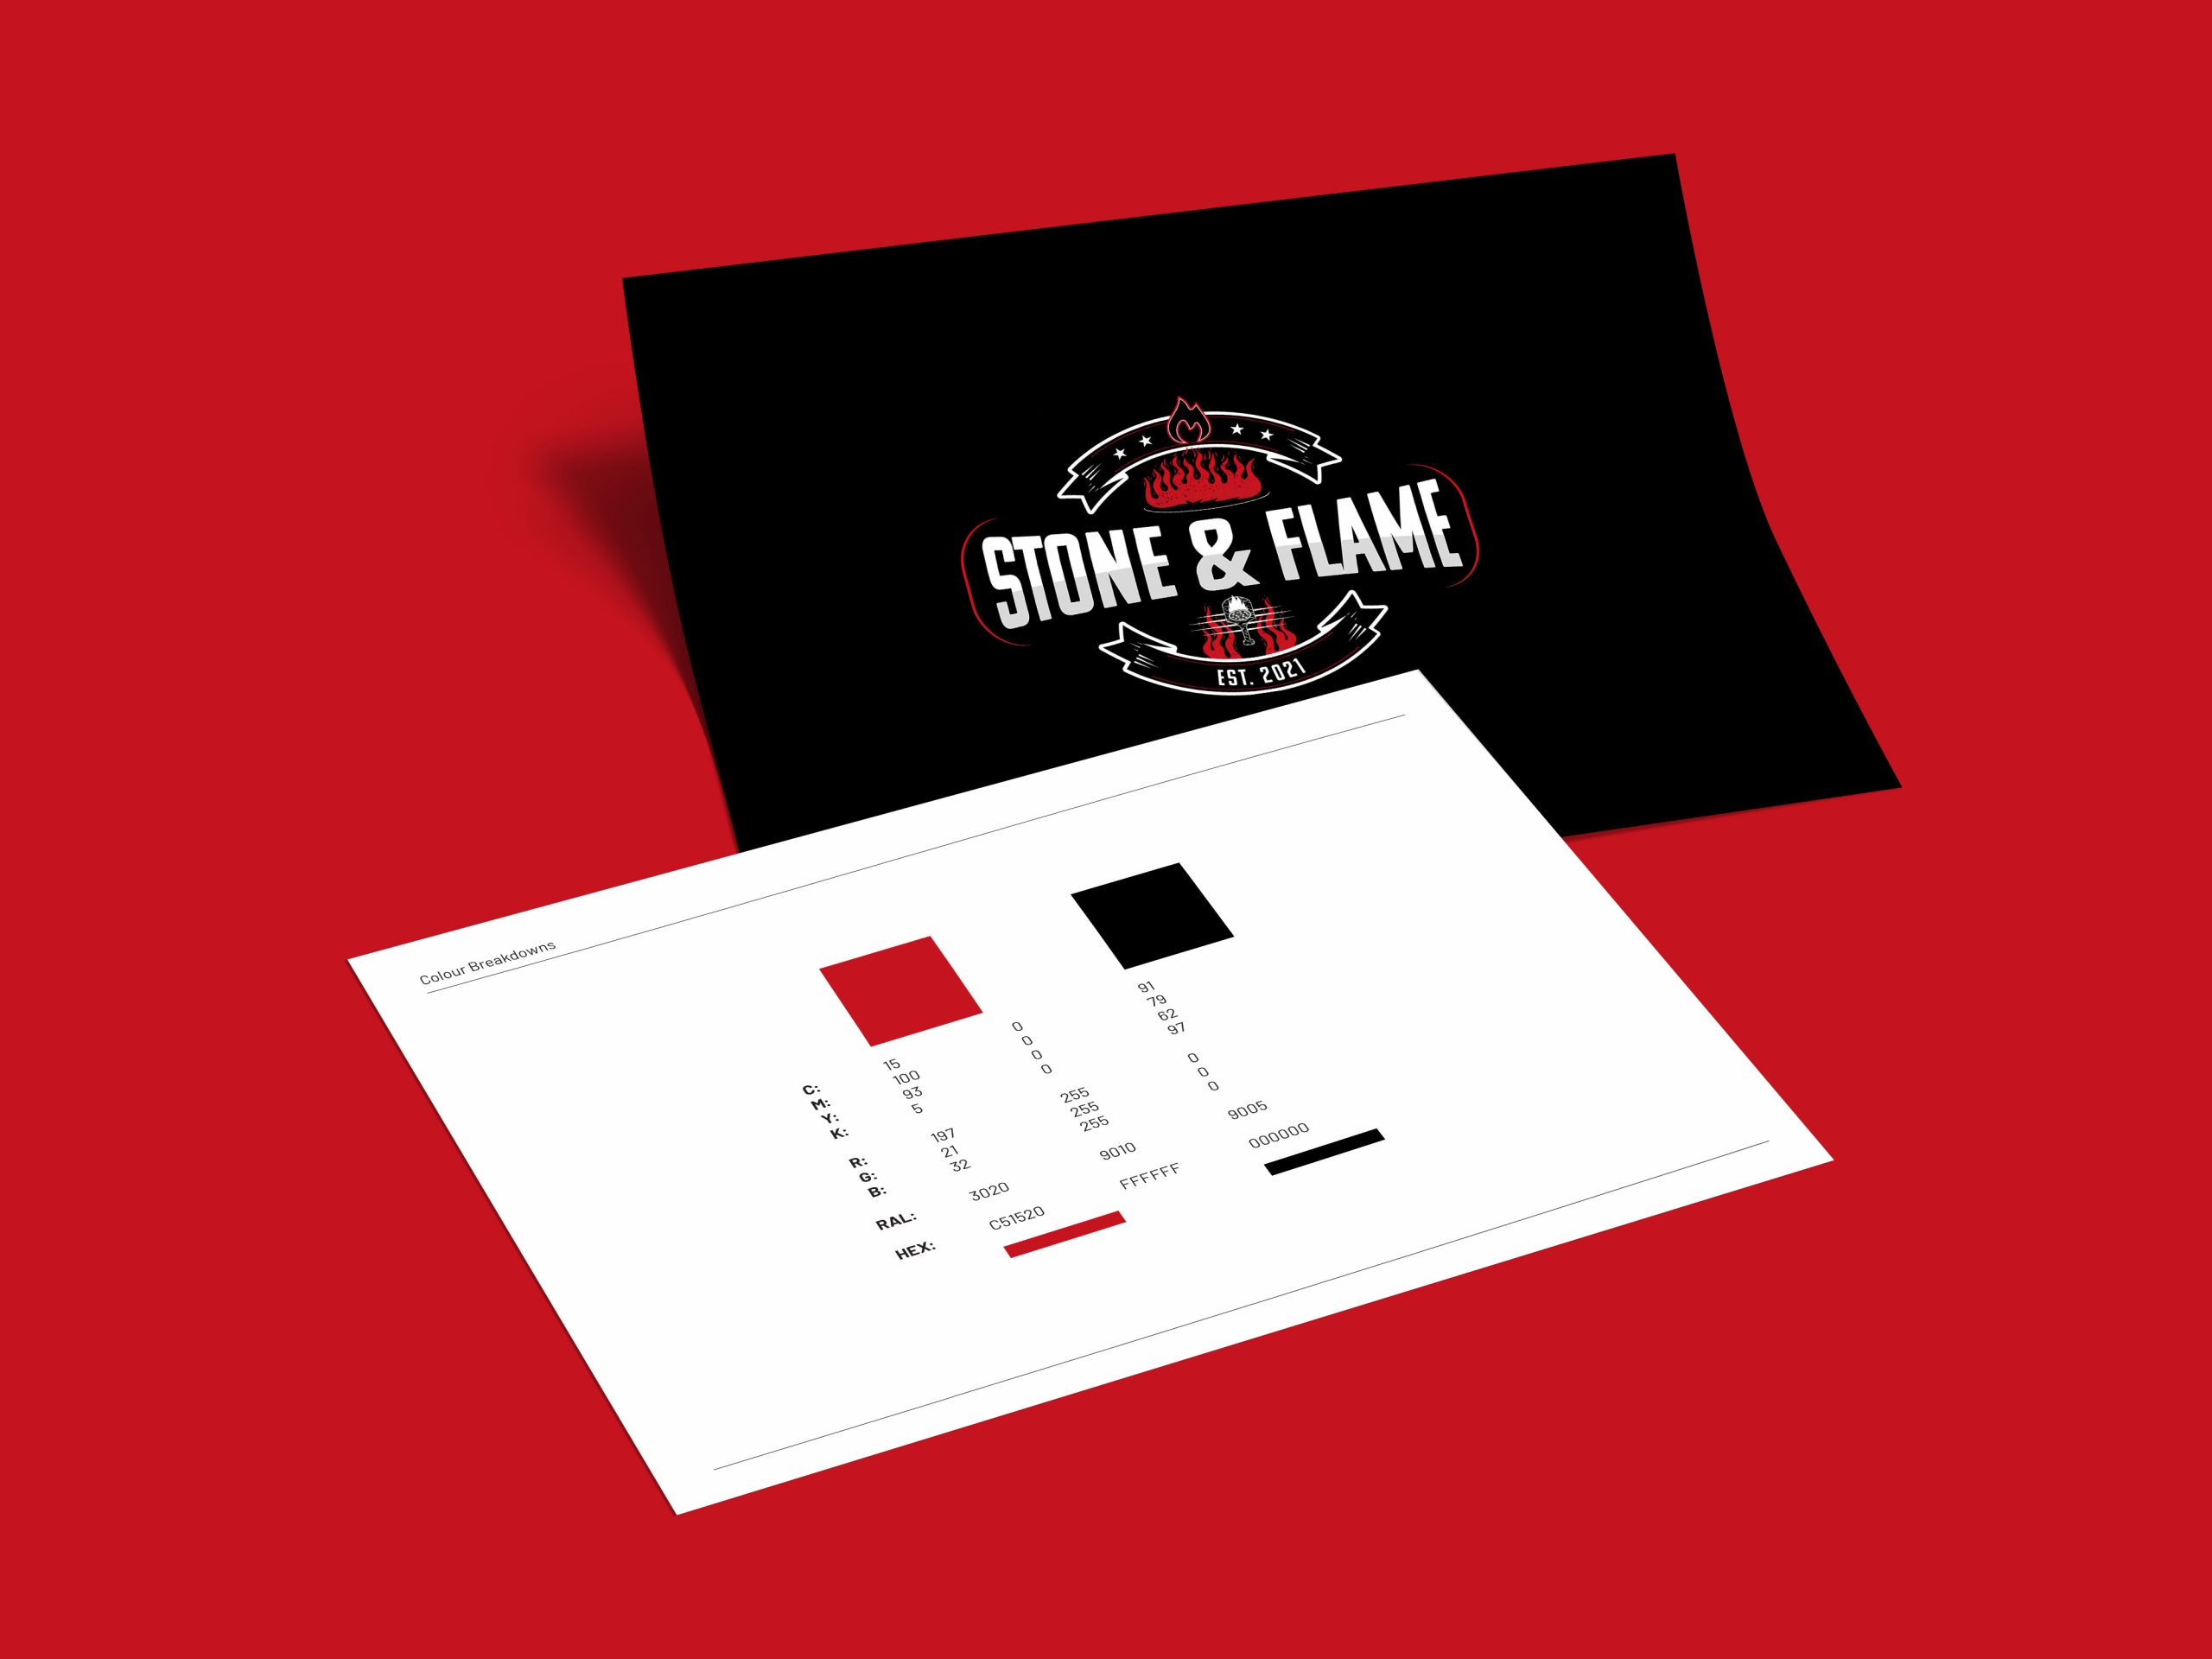 Stone & Flame - Brand Guidelines